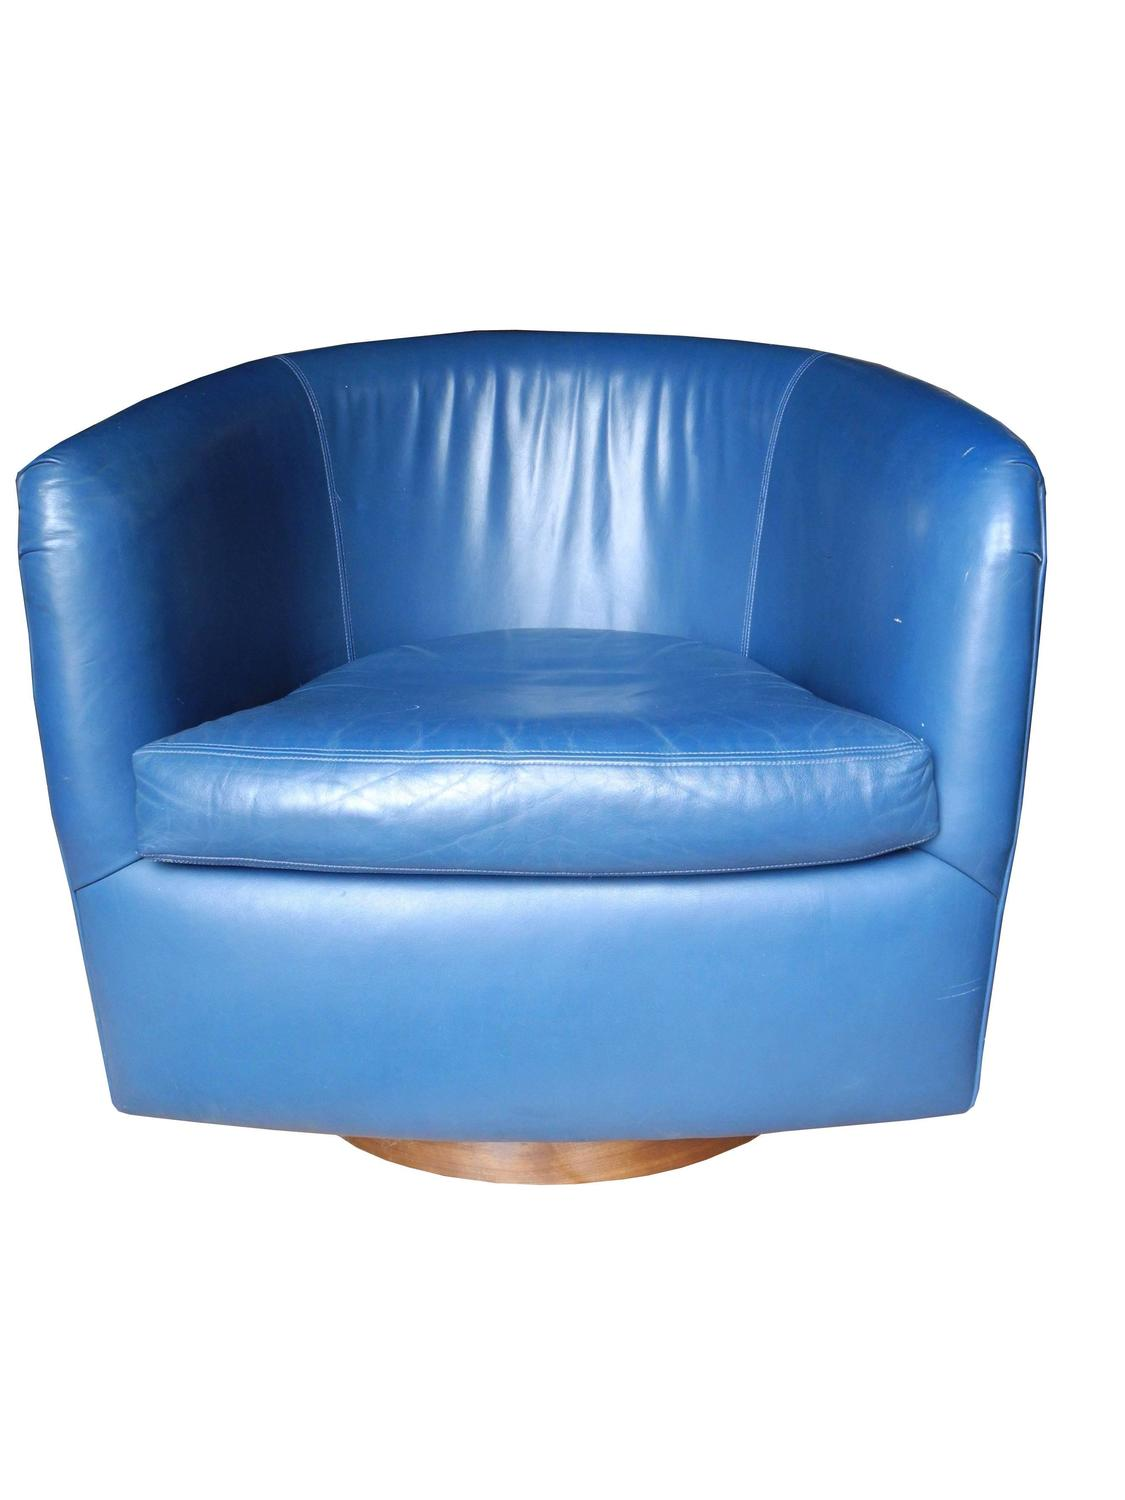 Mid century modern blue leather swivel lounge chairs by milo baughman